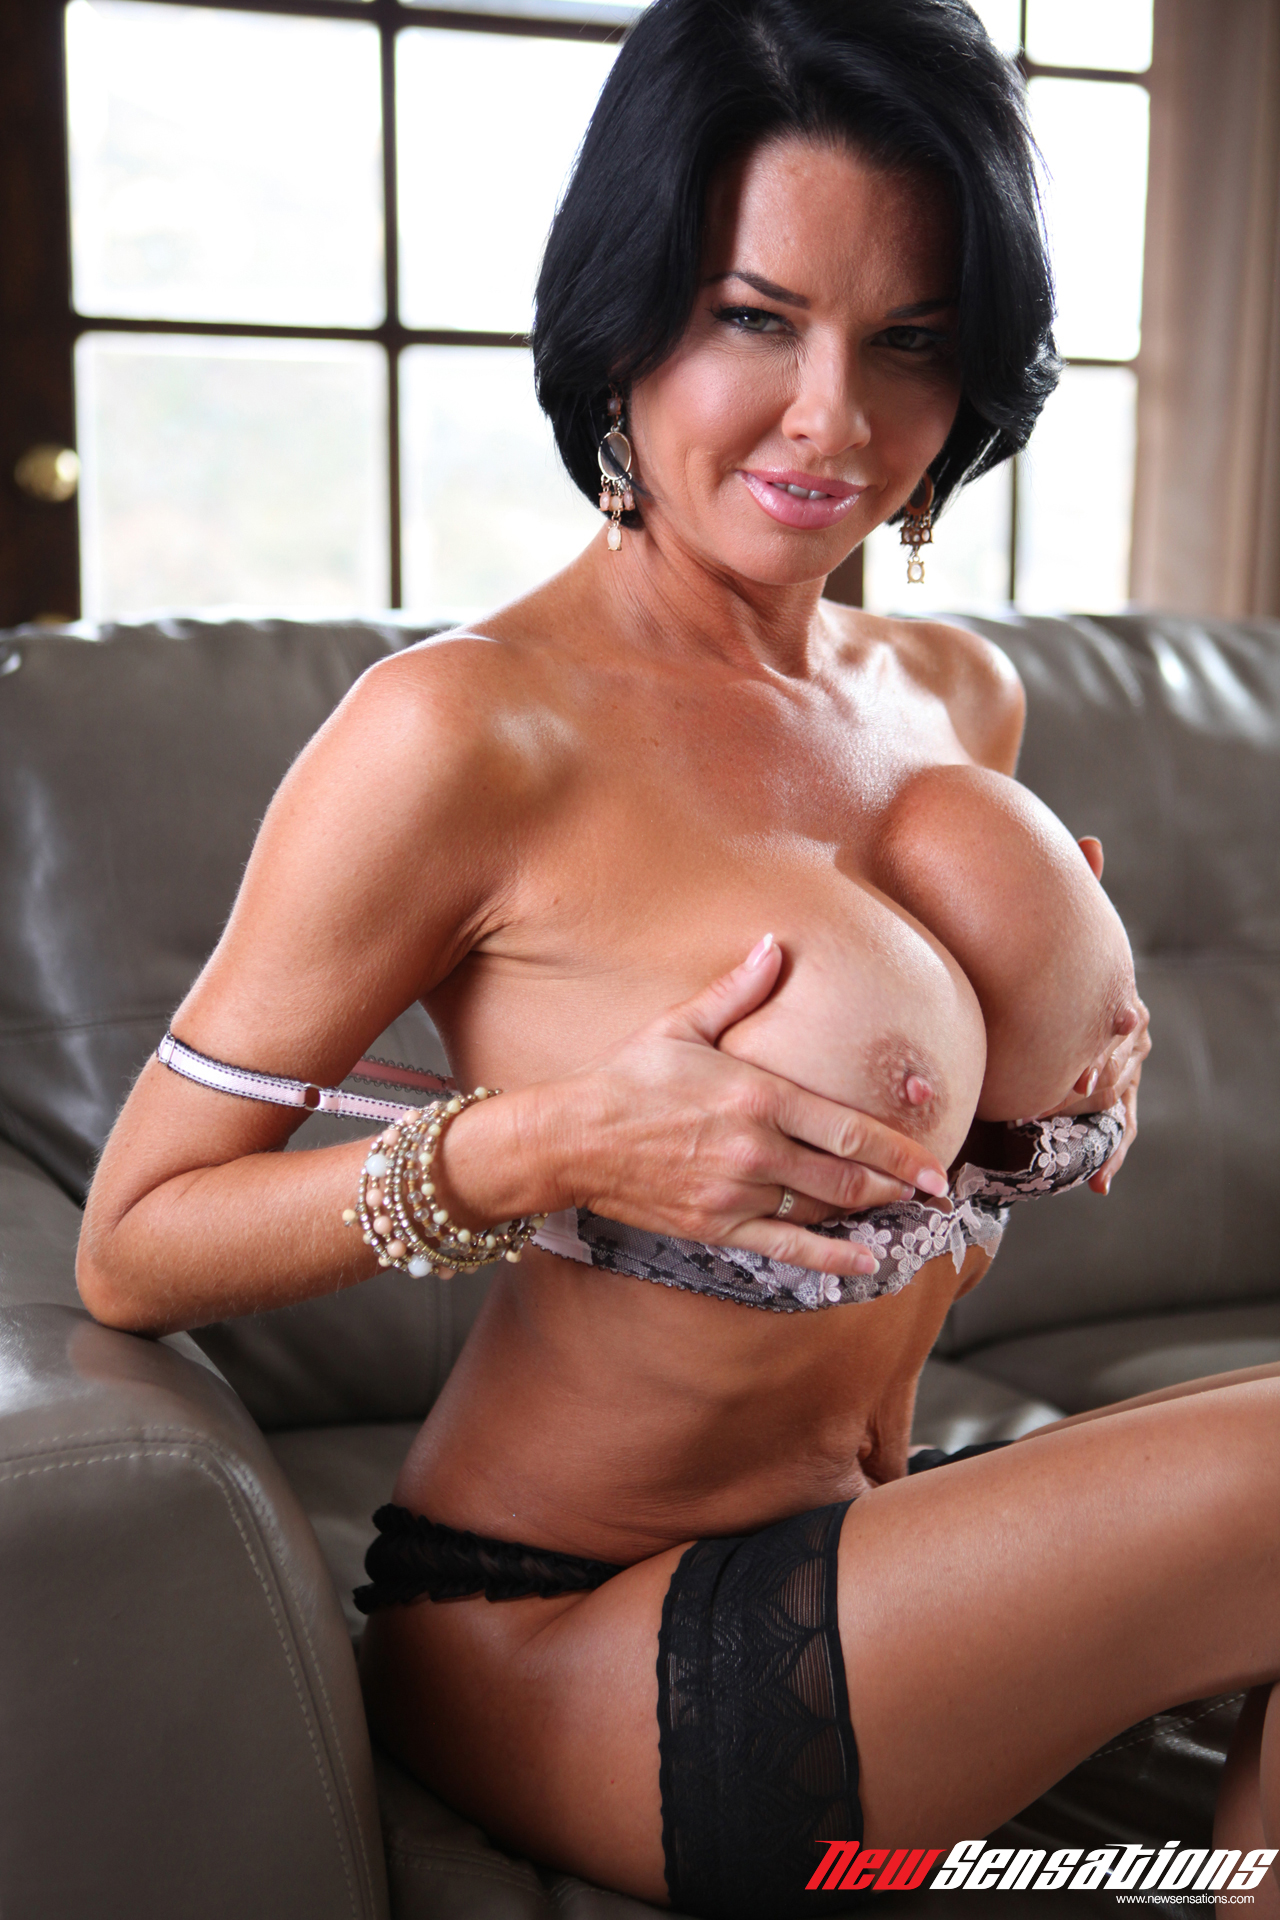 Milf Veronica Loves Cocks